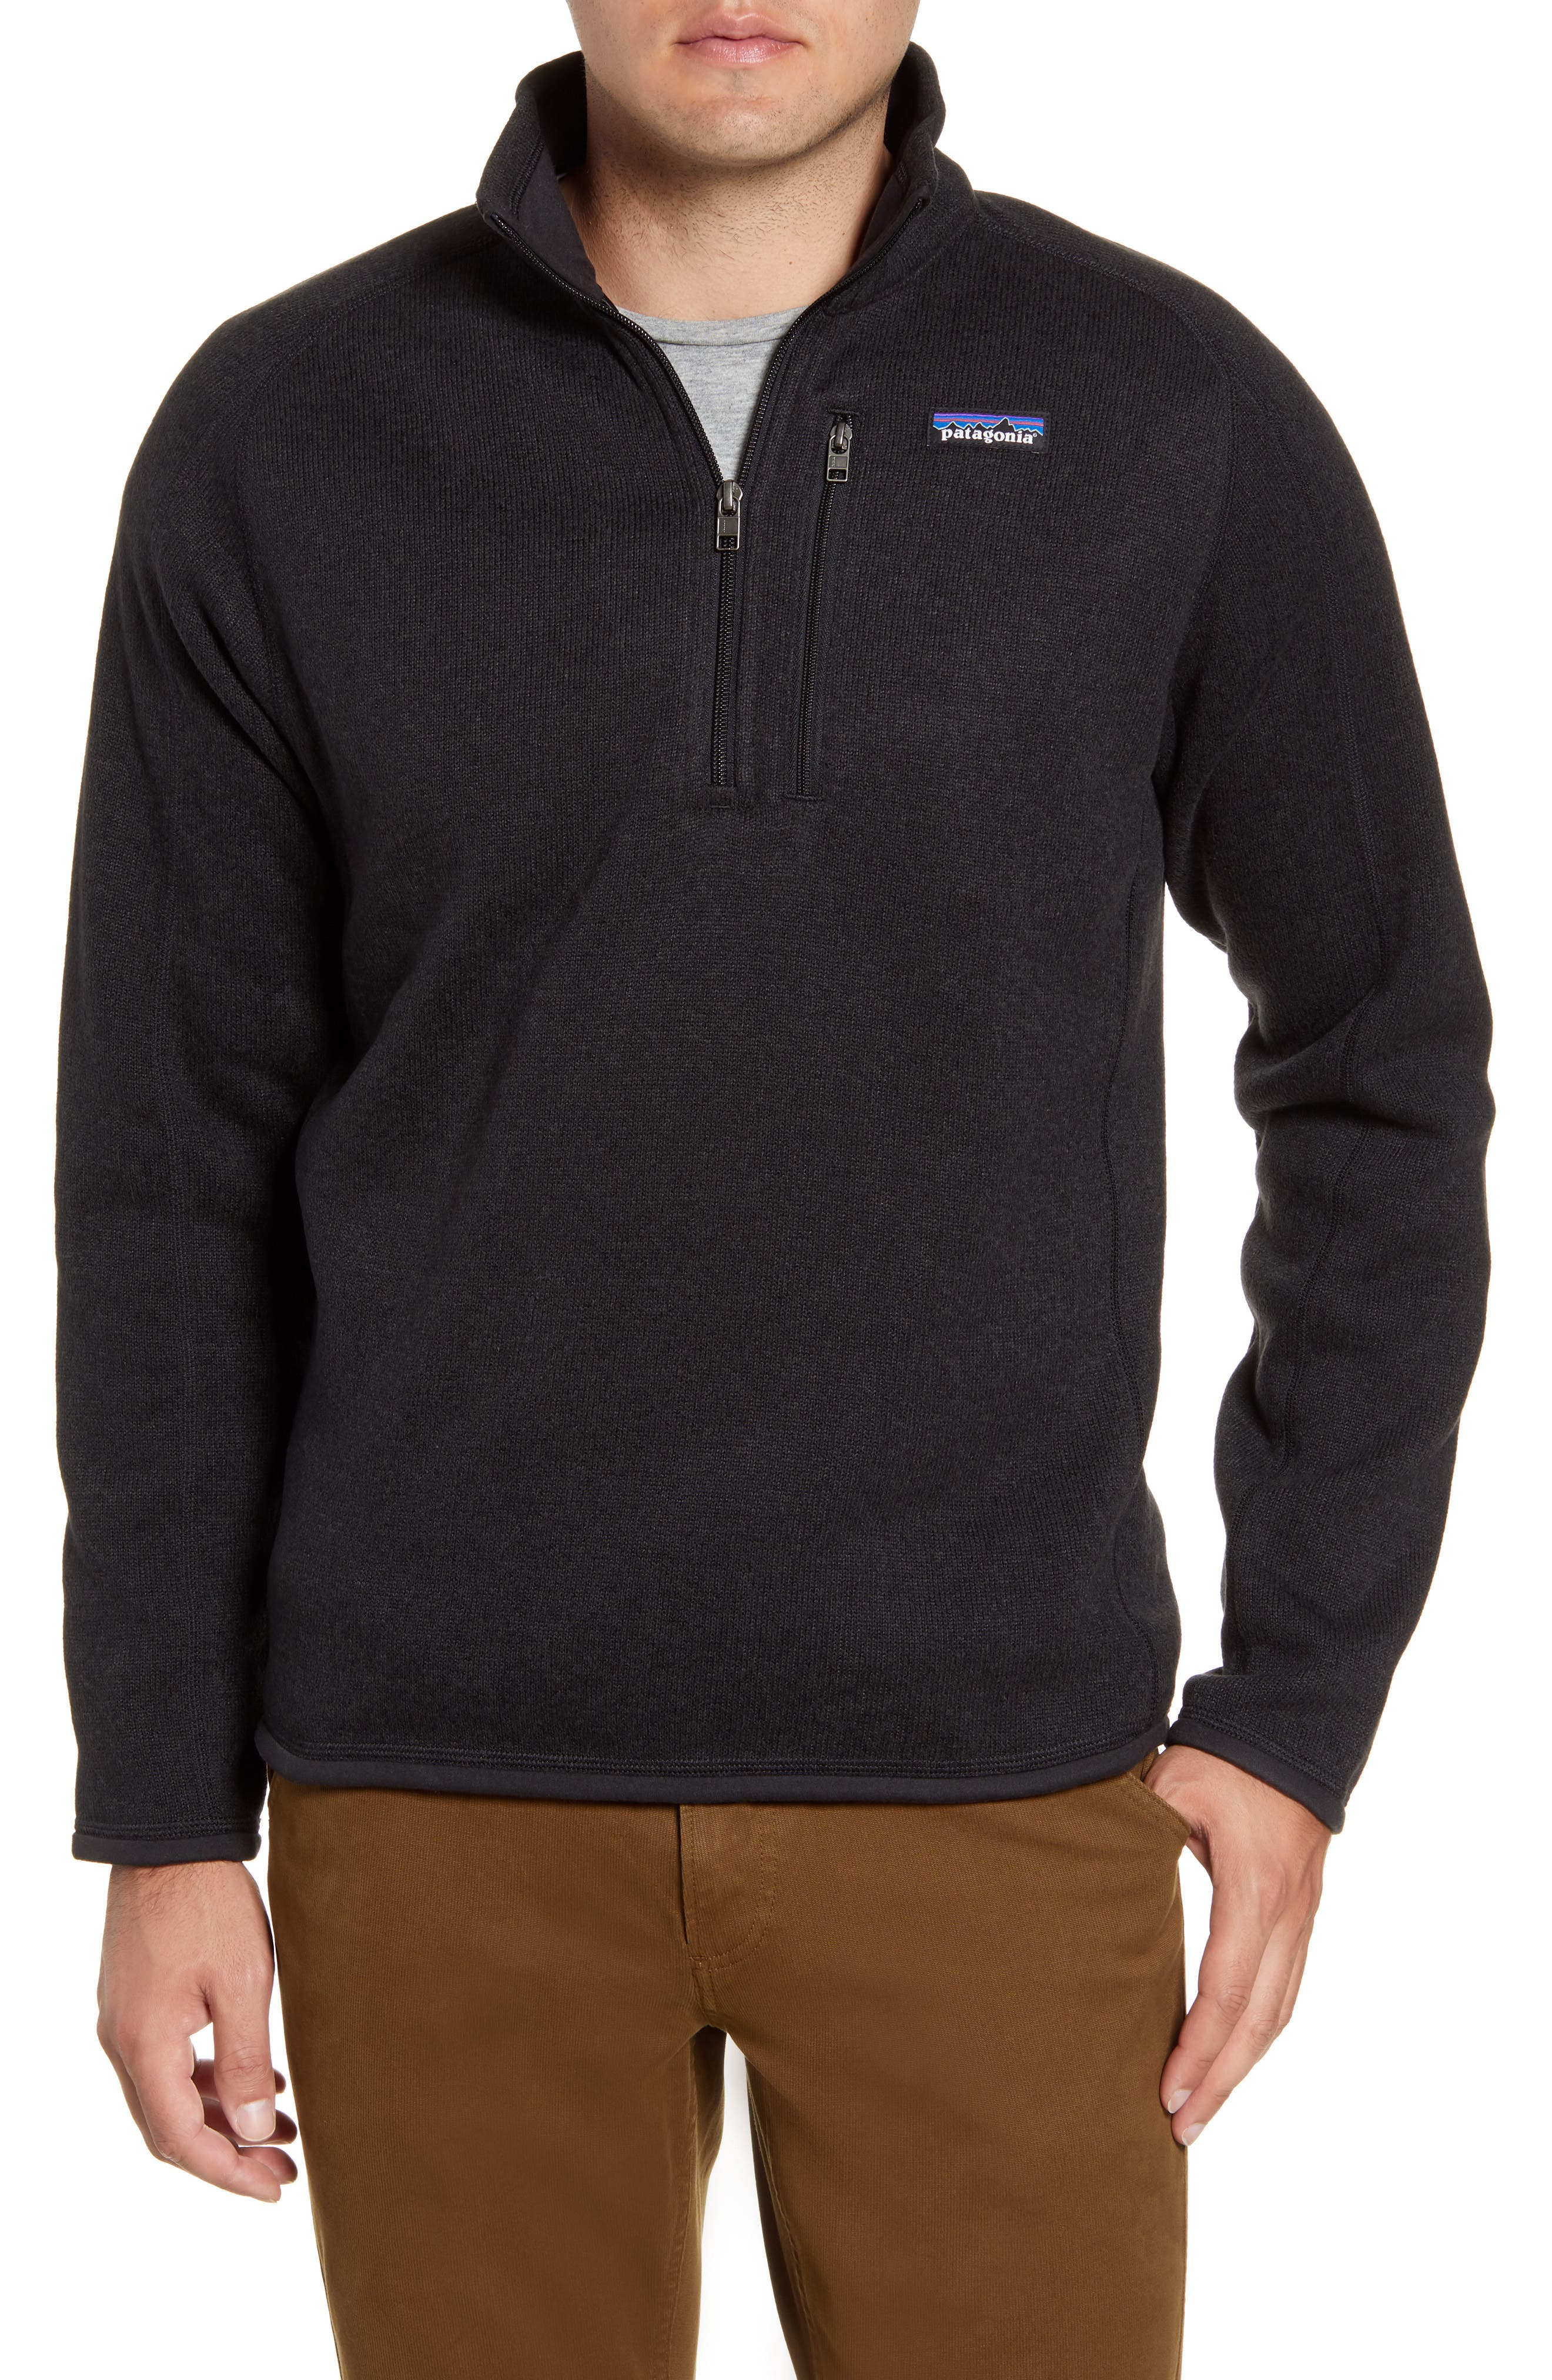 Great as outerwear or as a midlayer, this quarter-zip pullover combines a sweater-gauge face with a soft fleece interior for unbeatable comfort and warmth. Raglan sleeves and flatlock seams allow for greater mobility, while a mesh-lined chest pocket stashes cards, keys or your phone. Even better, it\\\'s made from recycled fibers and dyed with a low-impact process that uses less water and energy consumption than conventional methods. Style